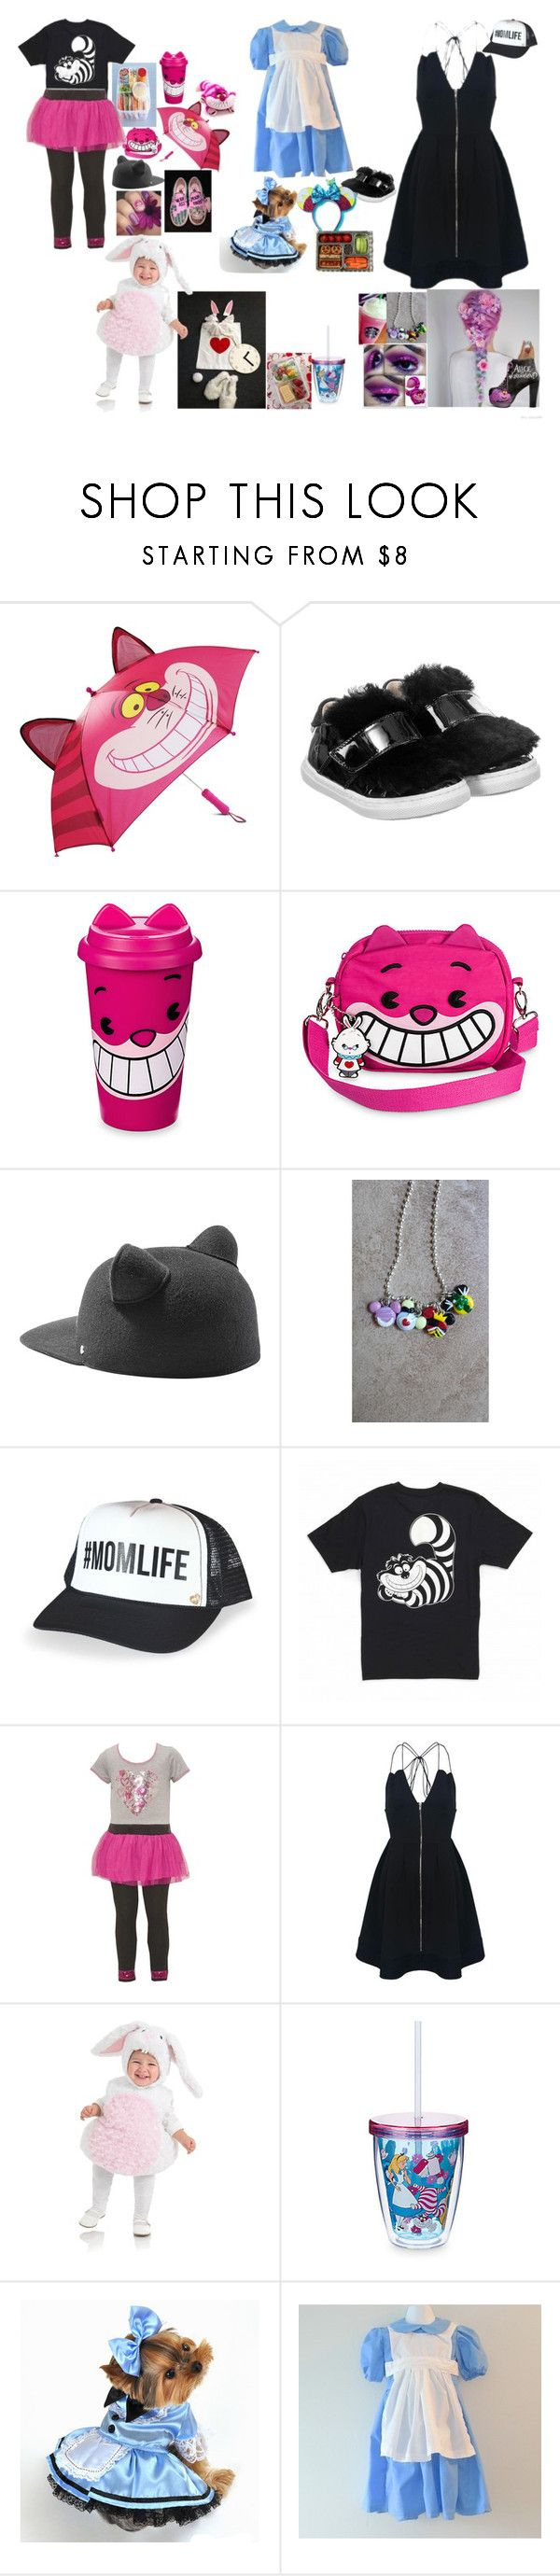 """matching bears"" by angelika-andrades ❤ liked on Polyvore featuring Disney, step2wo, Cotton Candy, Karl Lagerfeld and Mother Trucker"